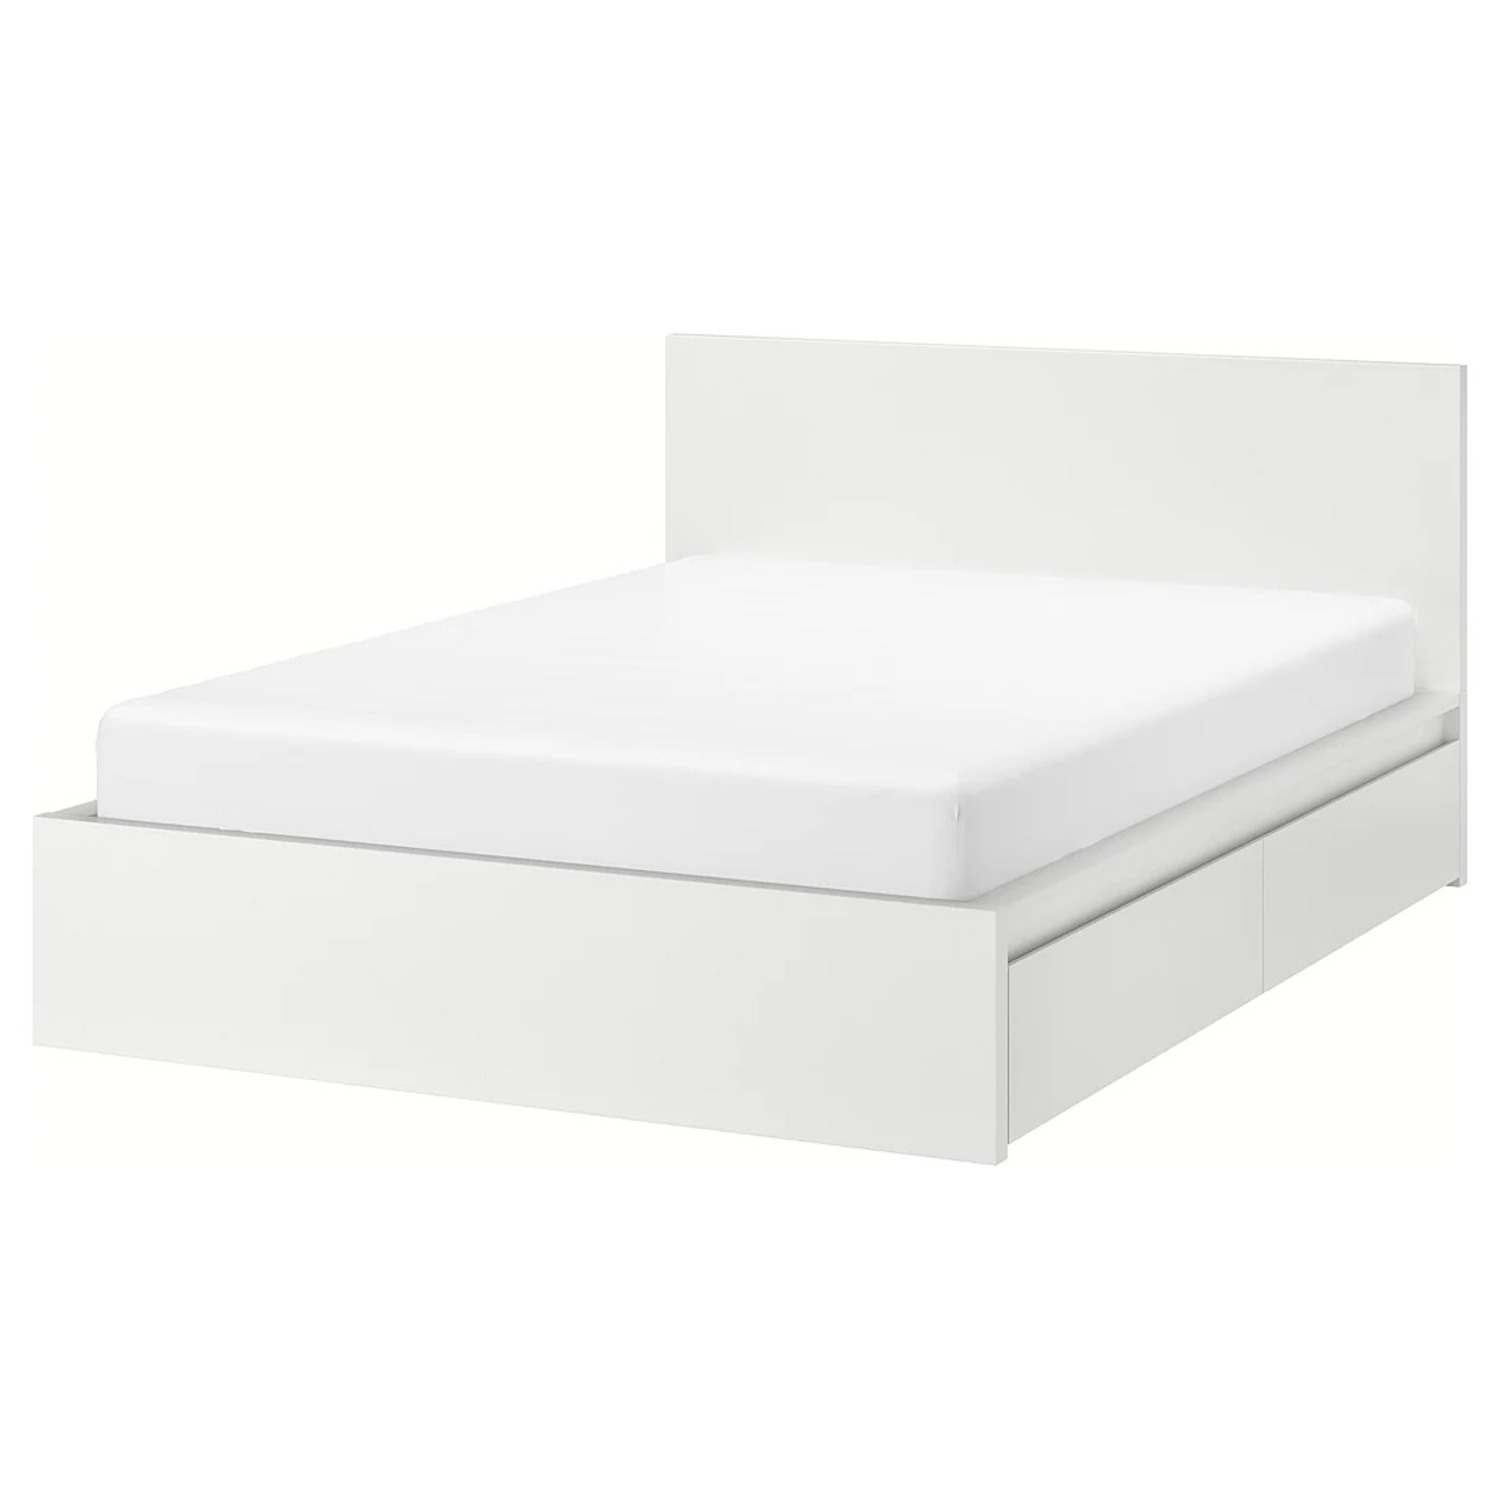 IKEA MALM Queen Bed with 2 Drawers - image-1